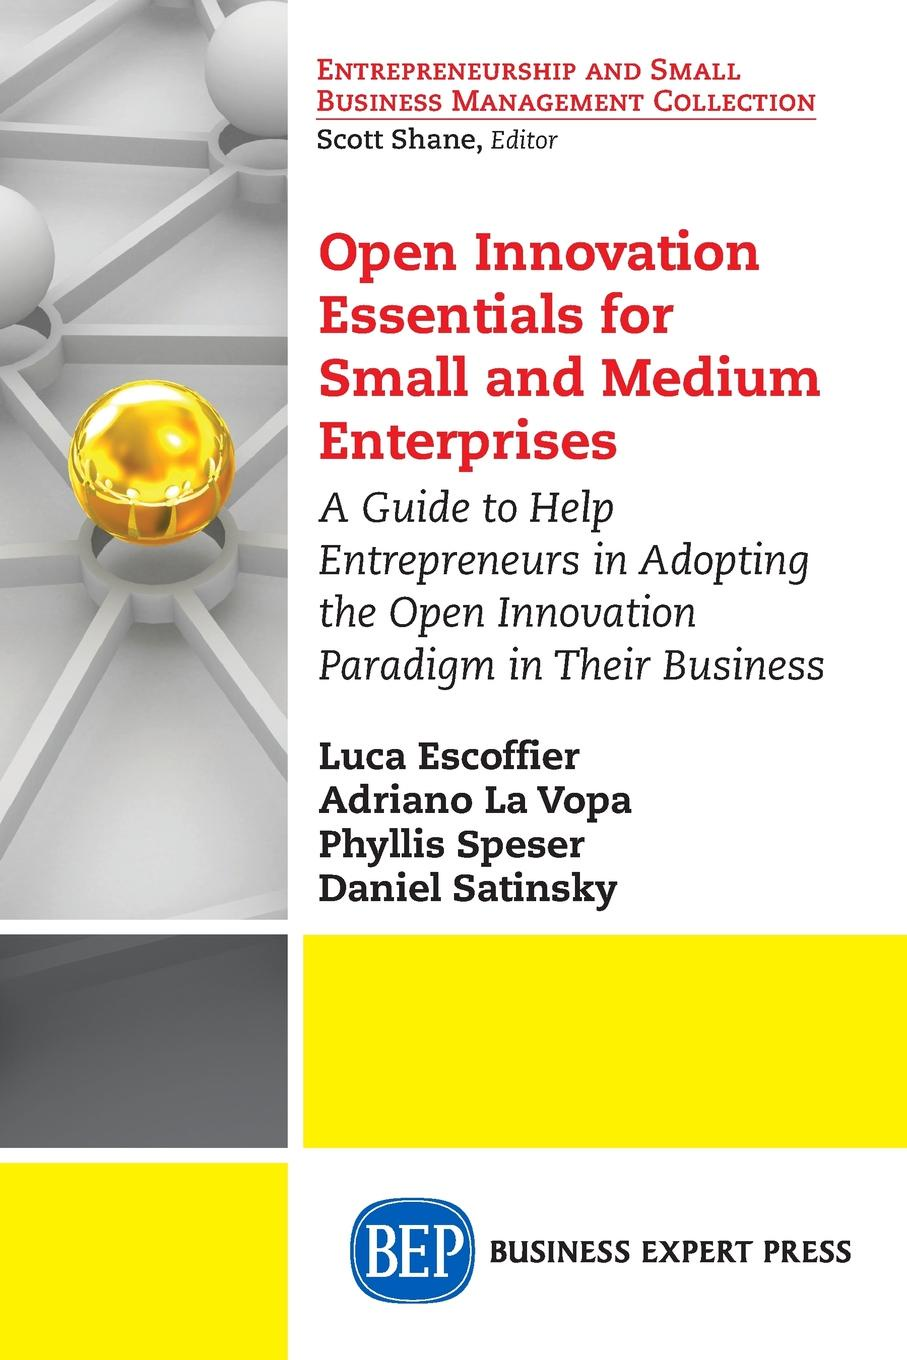 Luca Escoffier, Adriano La Vopa, Phyllis Speser Open Innovation Essentials for Small and Medium Enterprises. A Guide to Help Entrepreneurs in Adopting the Open Innovation Paradigm in Their Business knowledge and innovation dilemmas